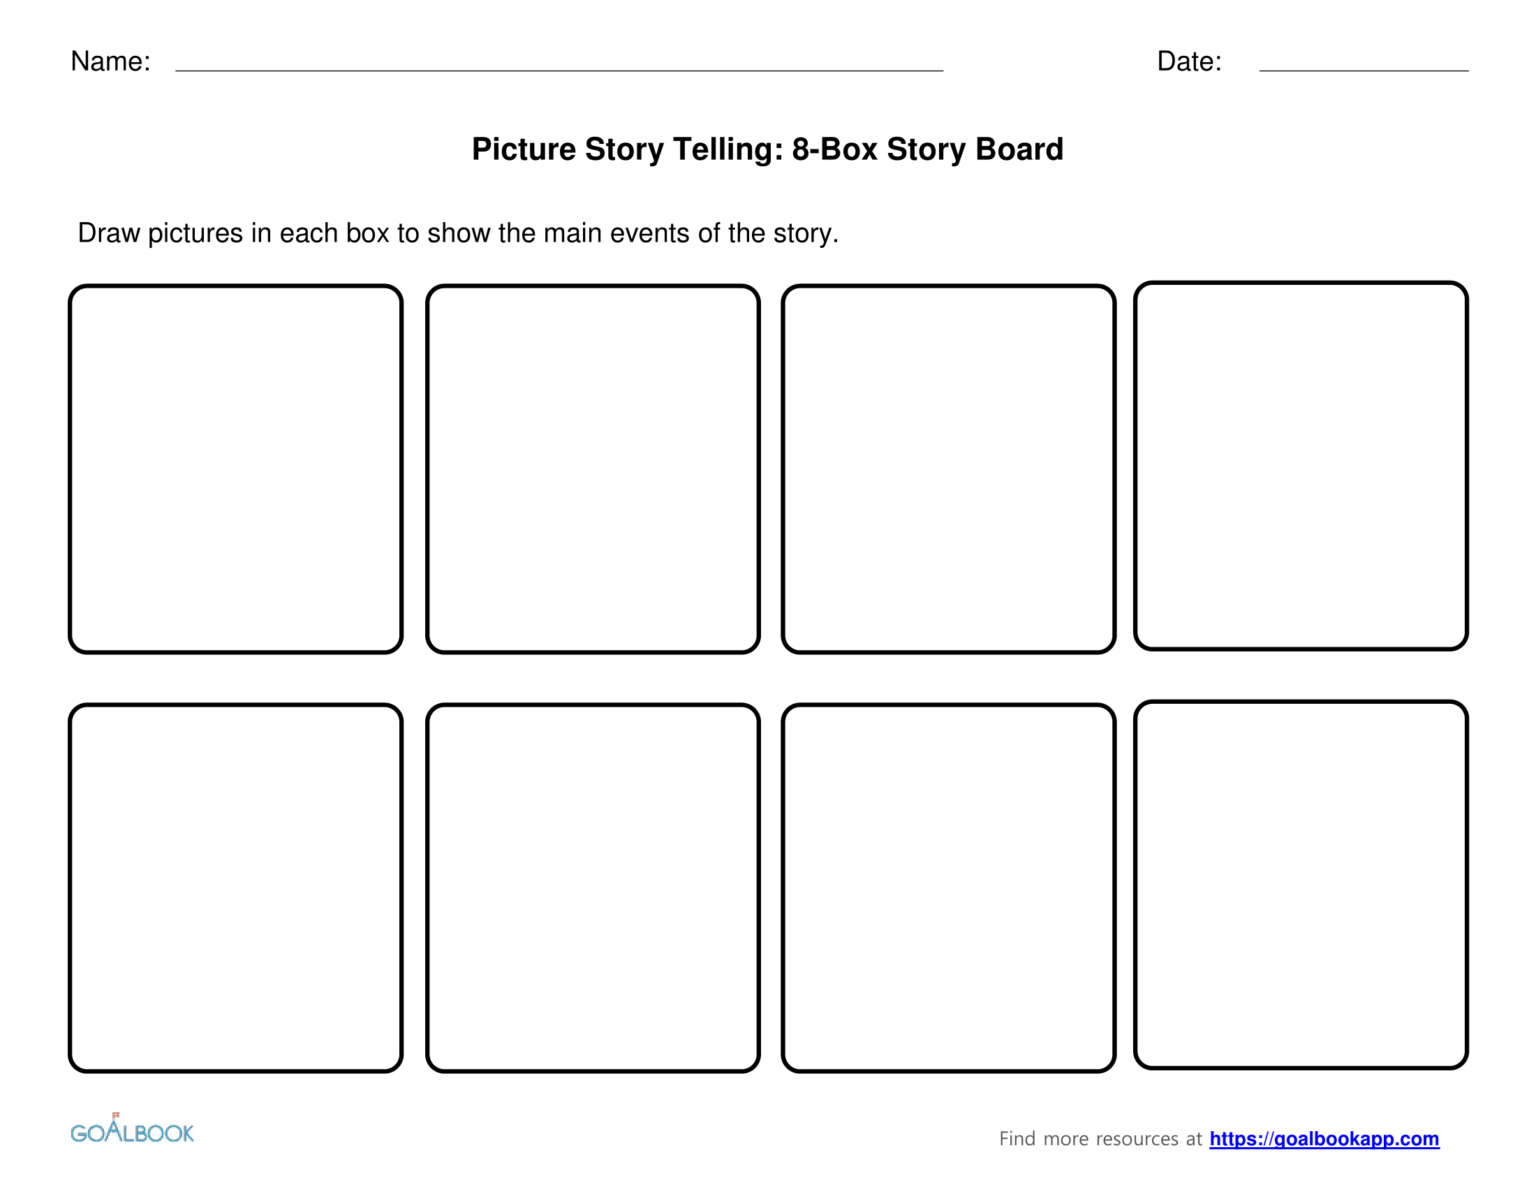 Comic Strip Writing Udl Strategies